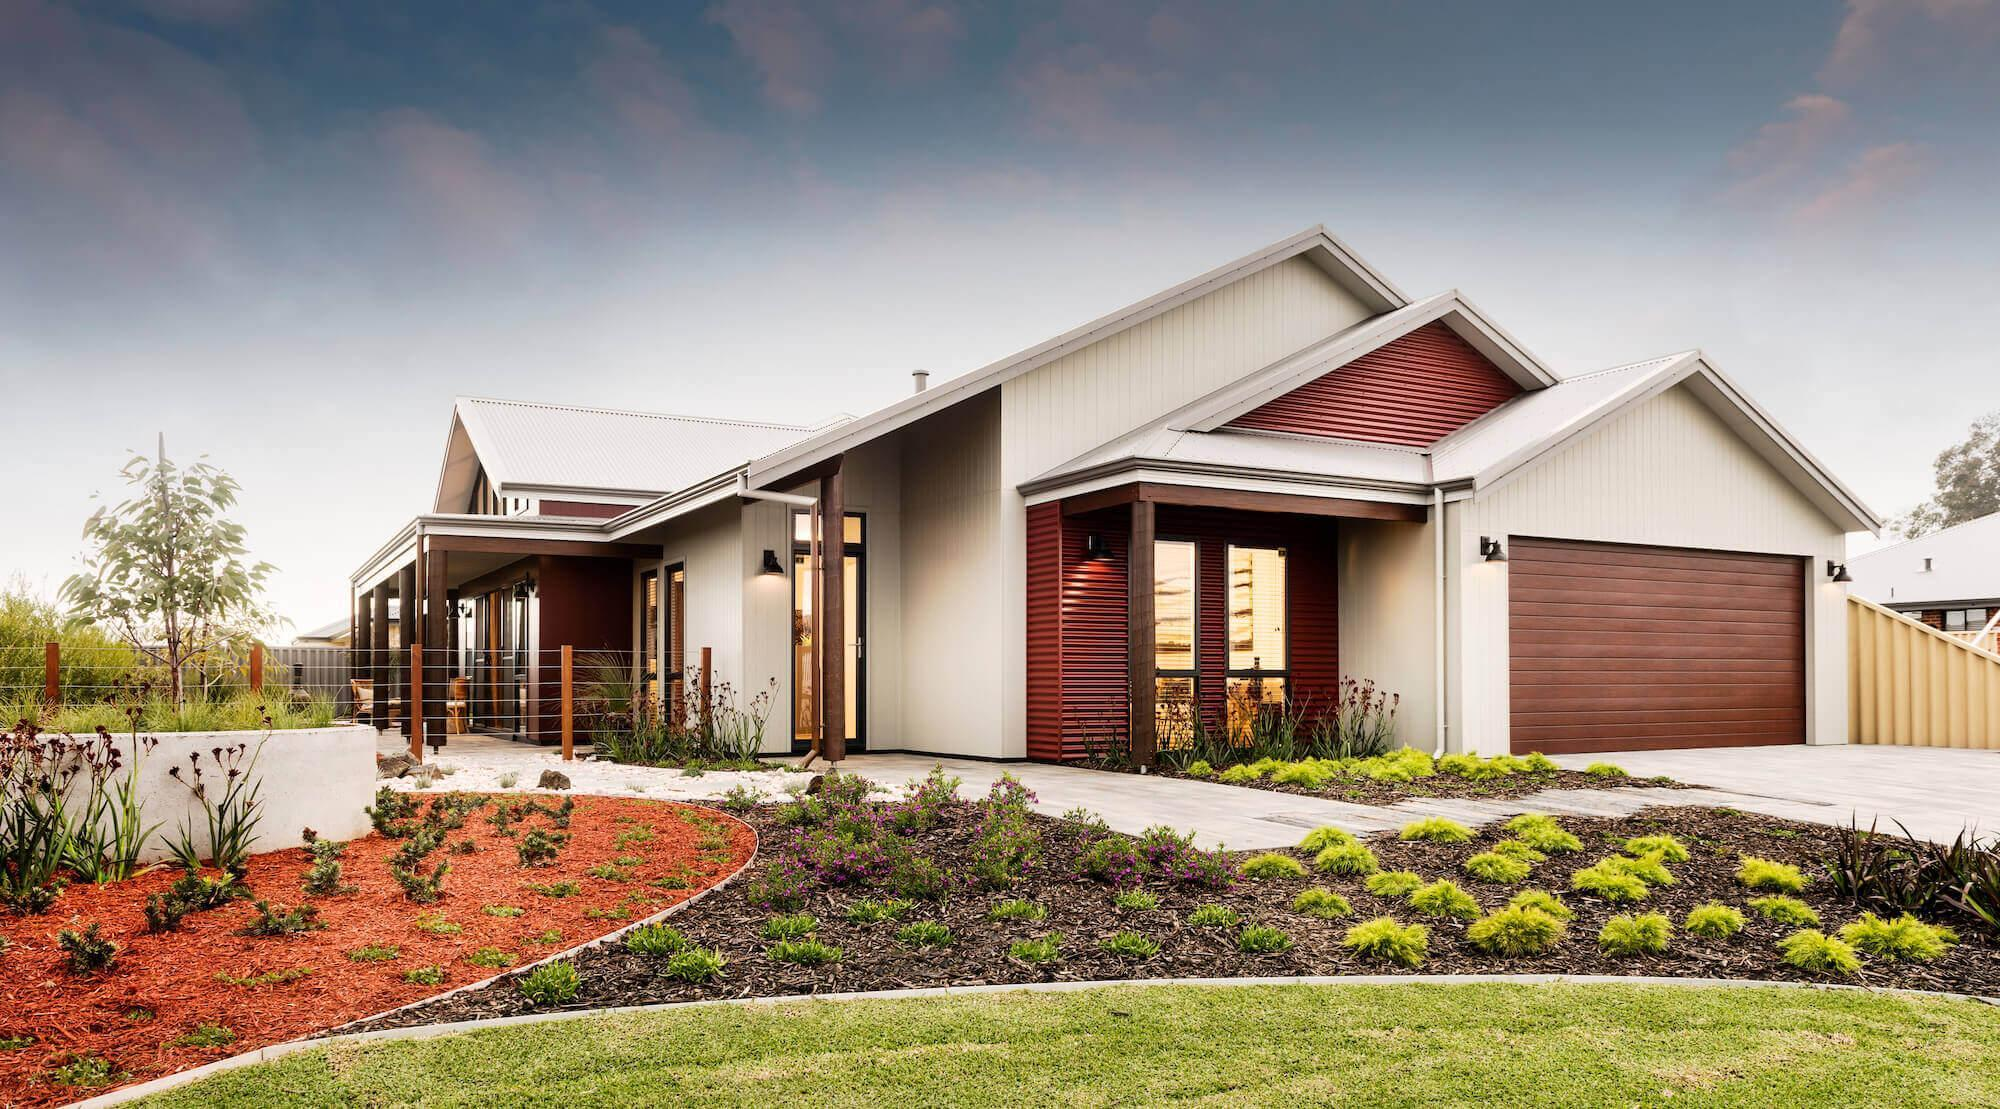 House design companies australia 28 images we for House building companies